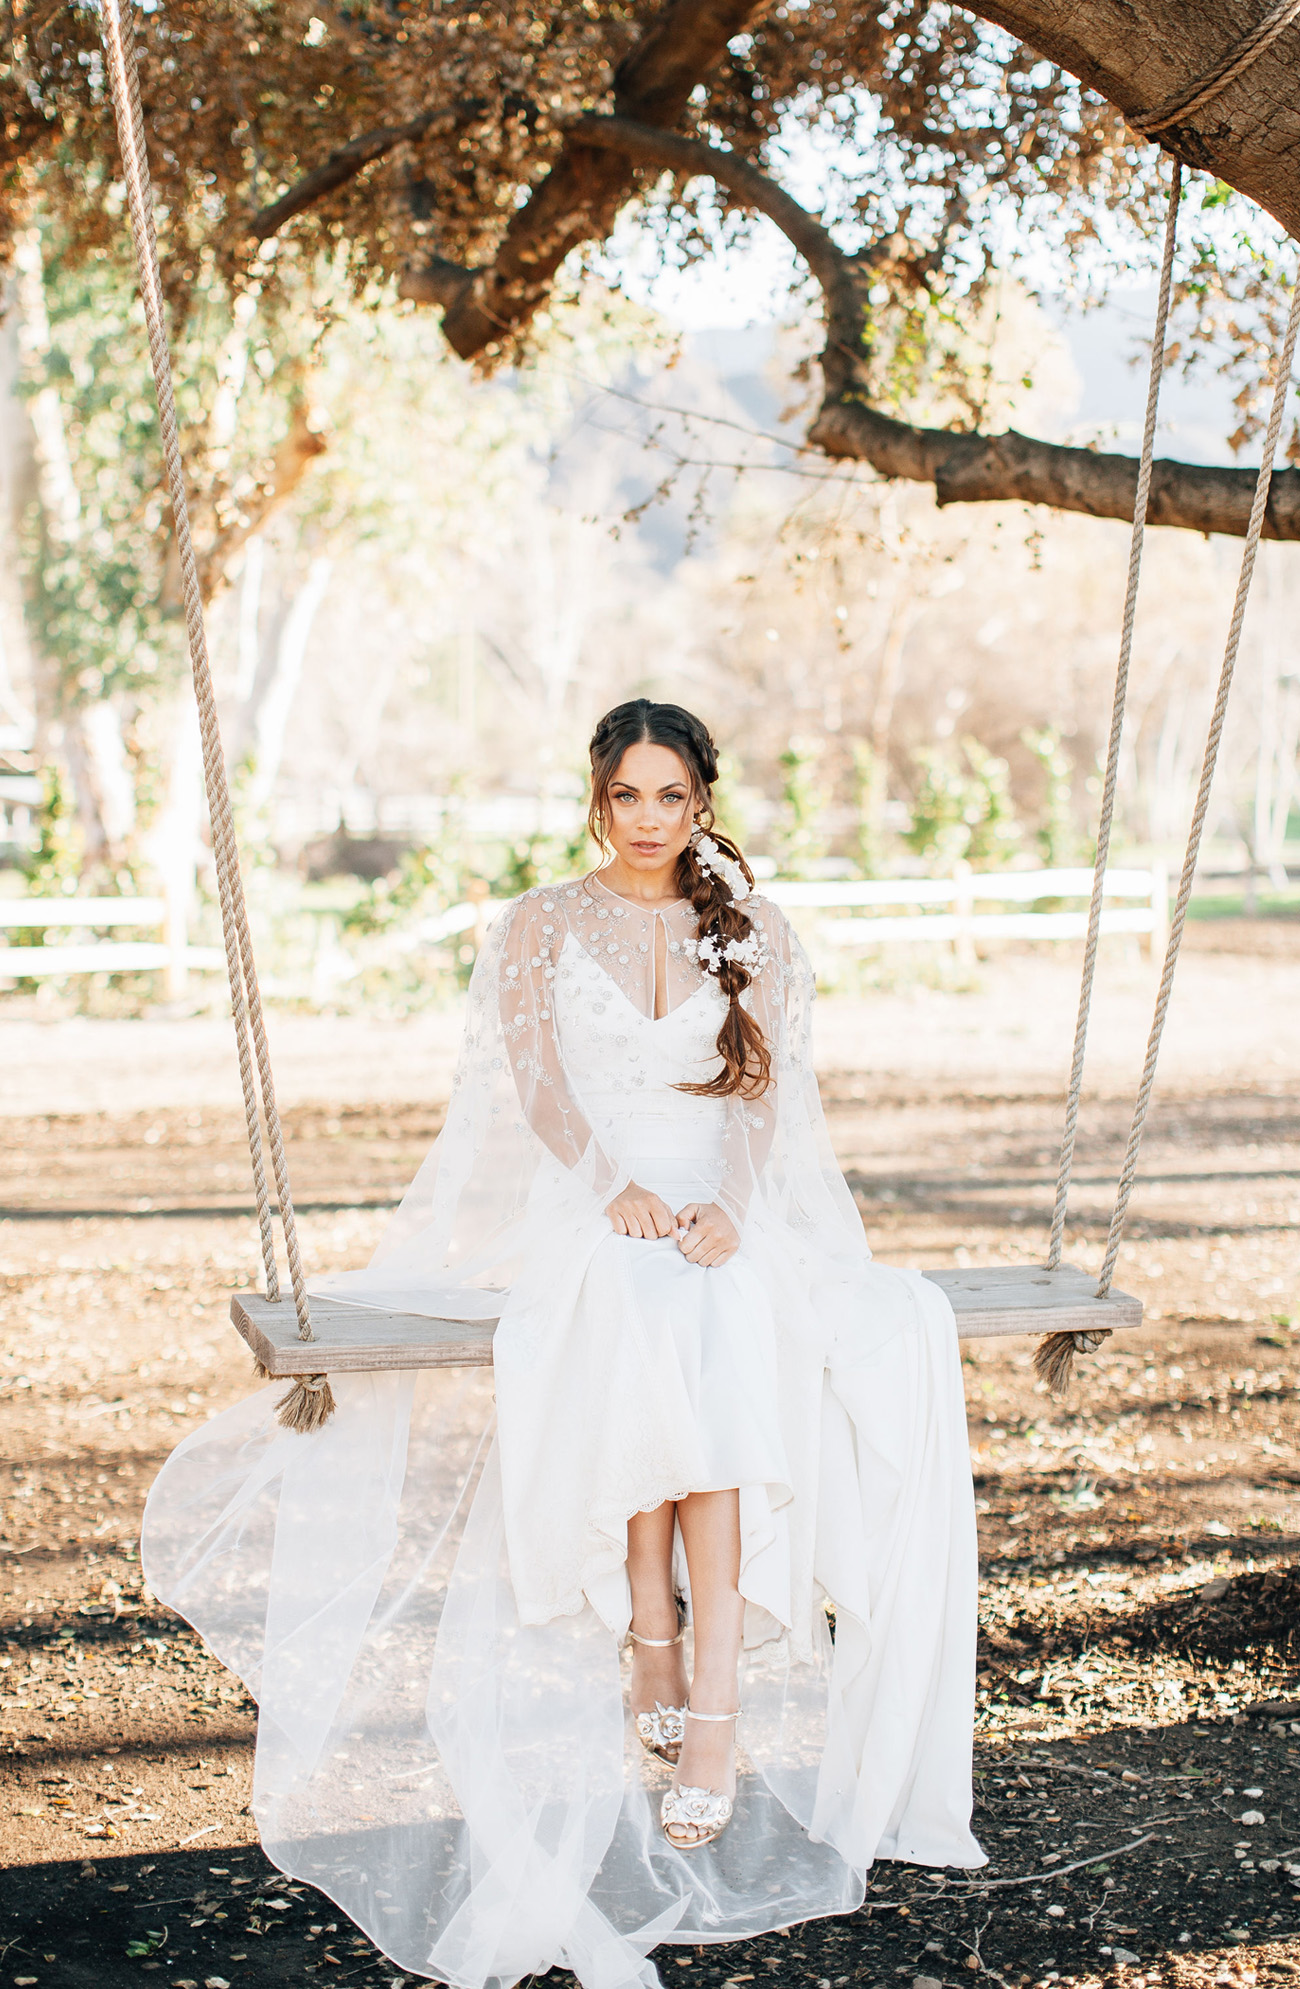 Lovers Society x Green Wedding Shoes Wyatt Wedding Dress paired with a cape